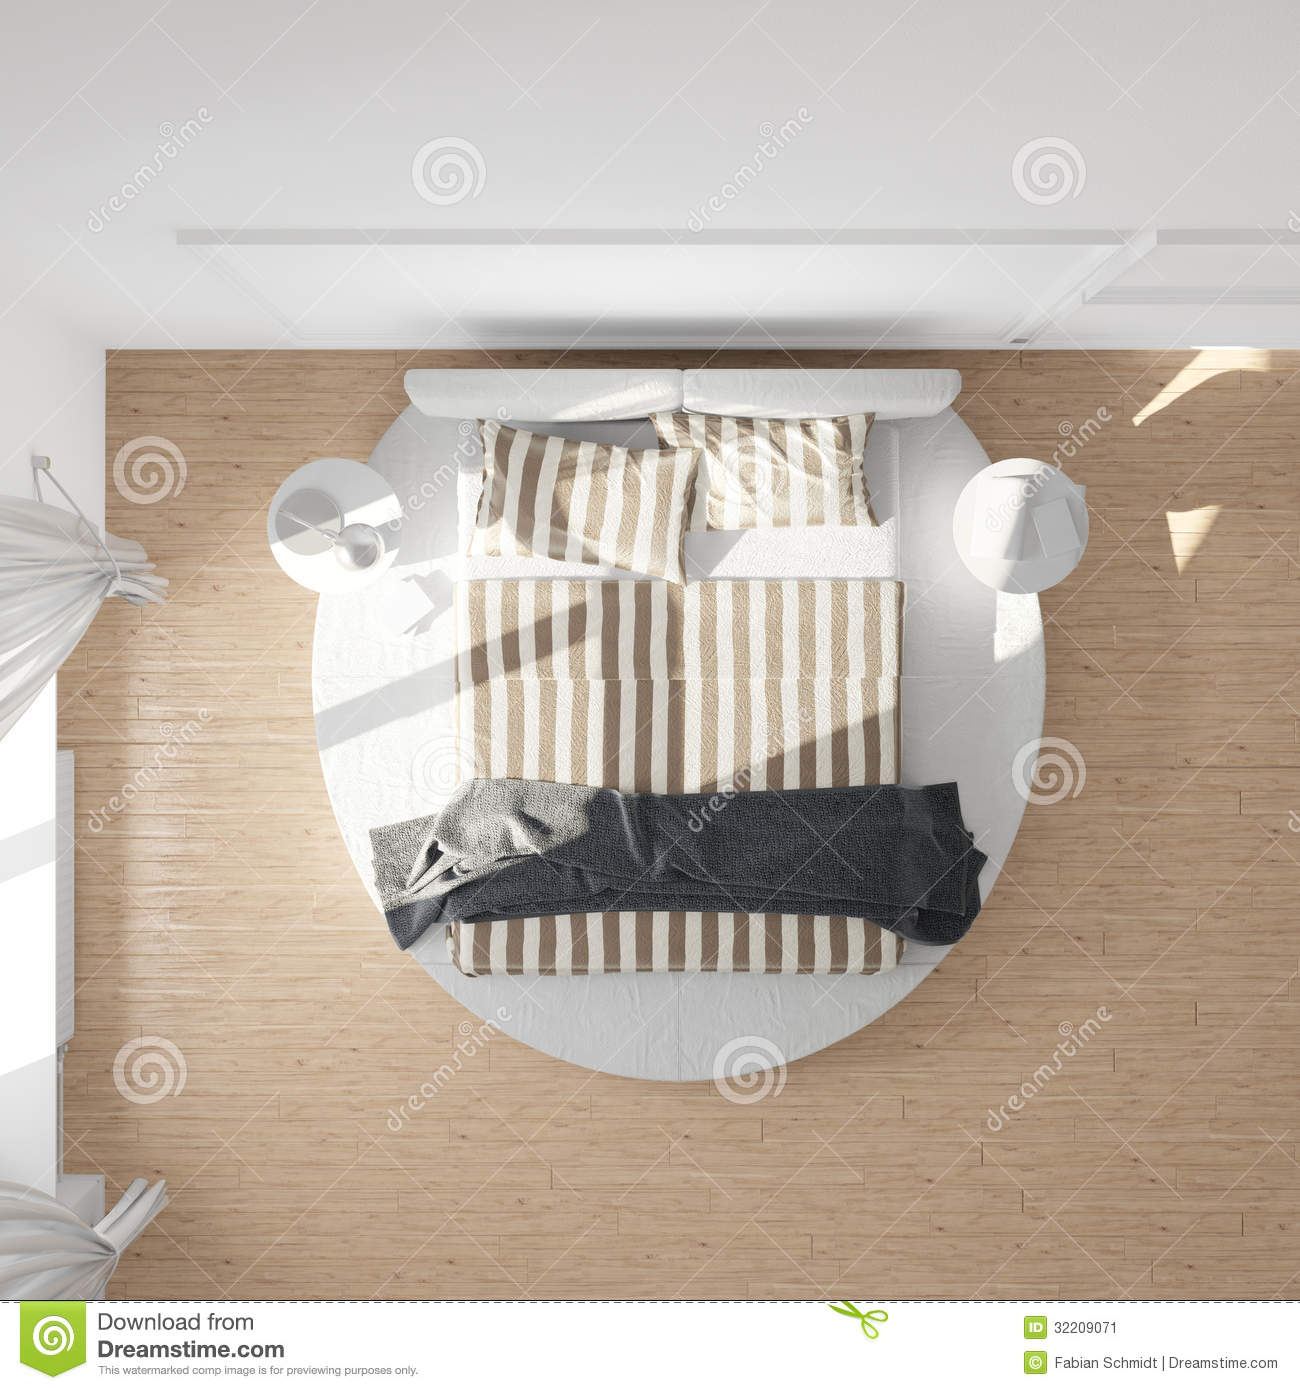 Bed design top view image - Royalty Free Stock Photo Download Bedroom Top View